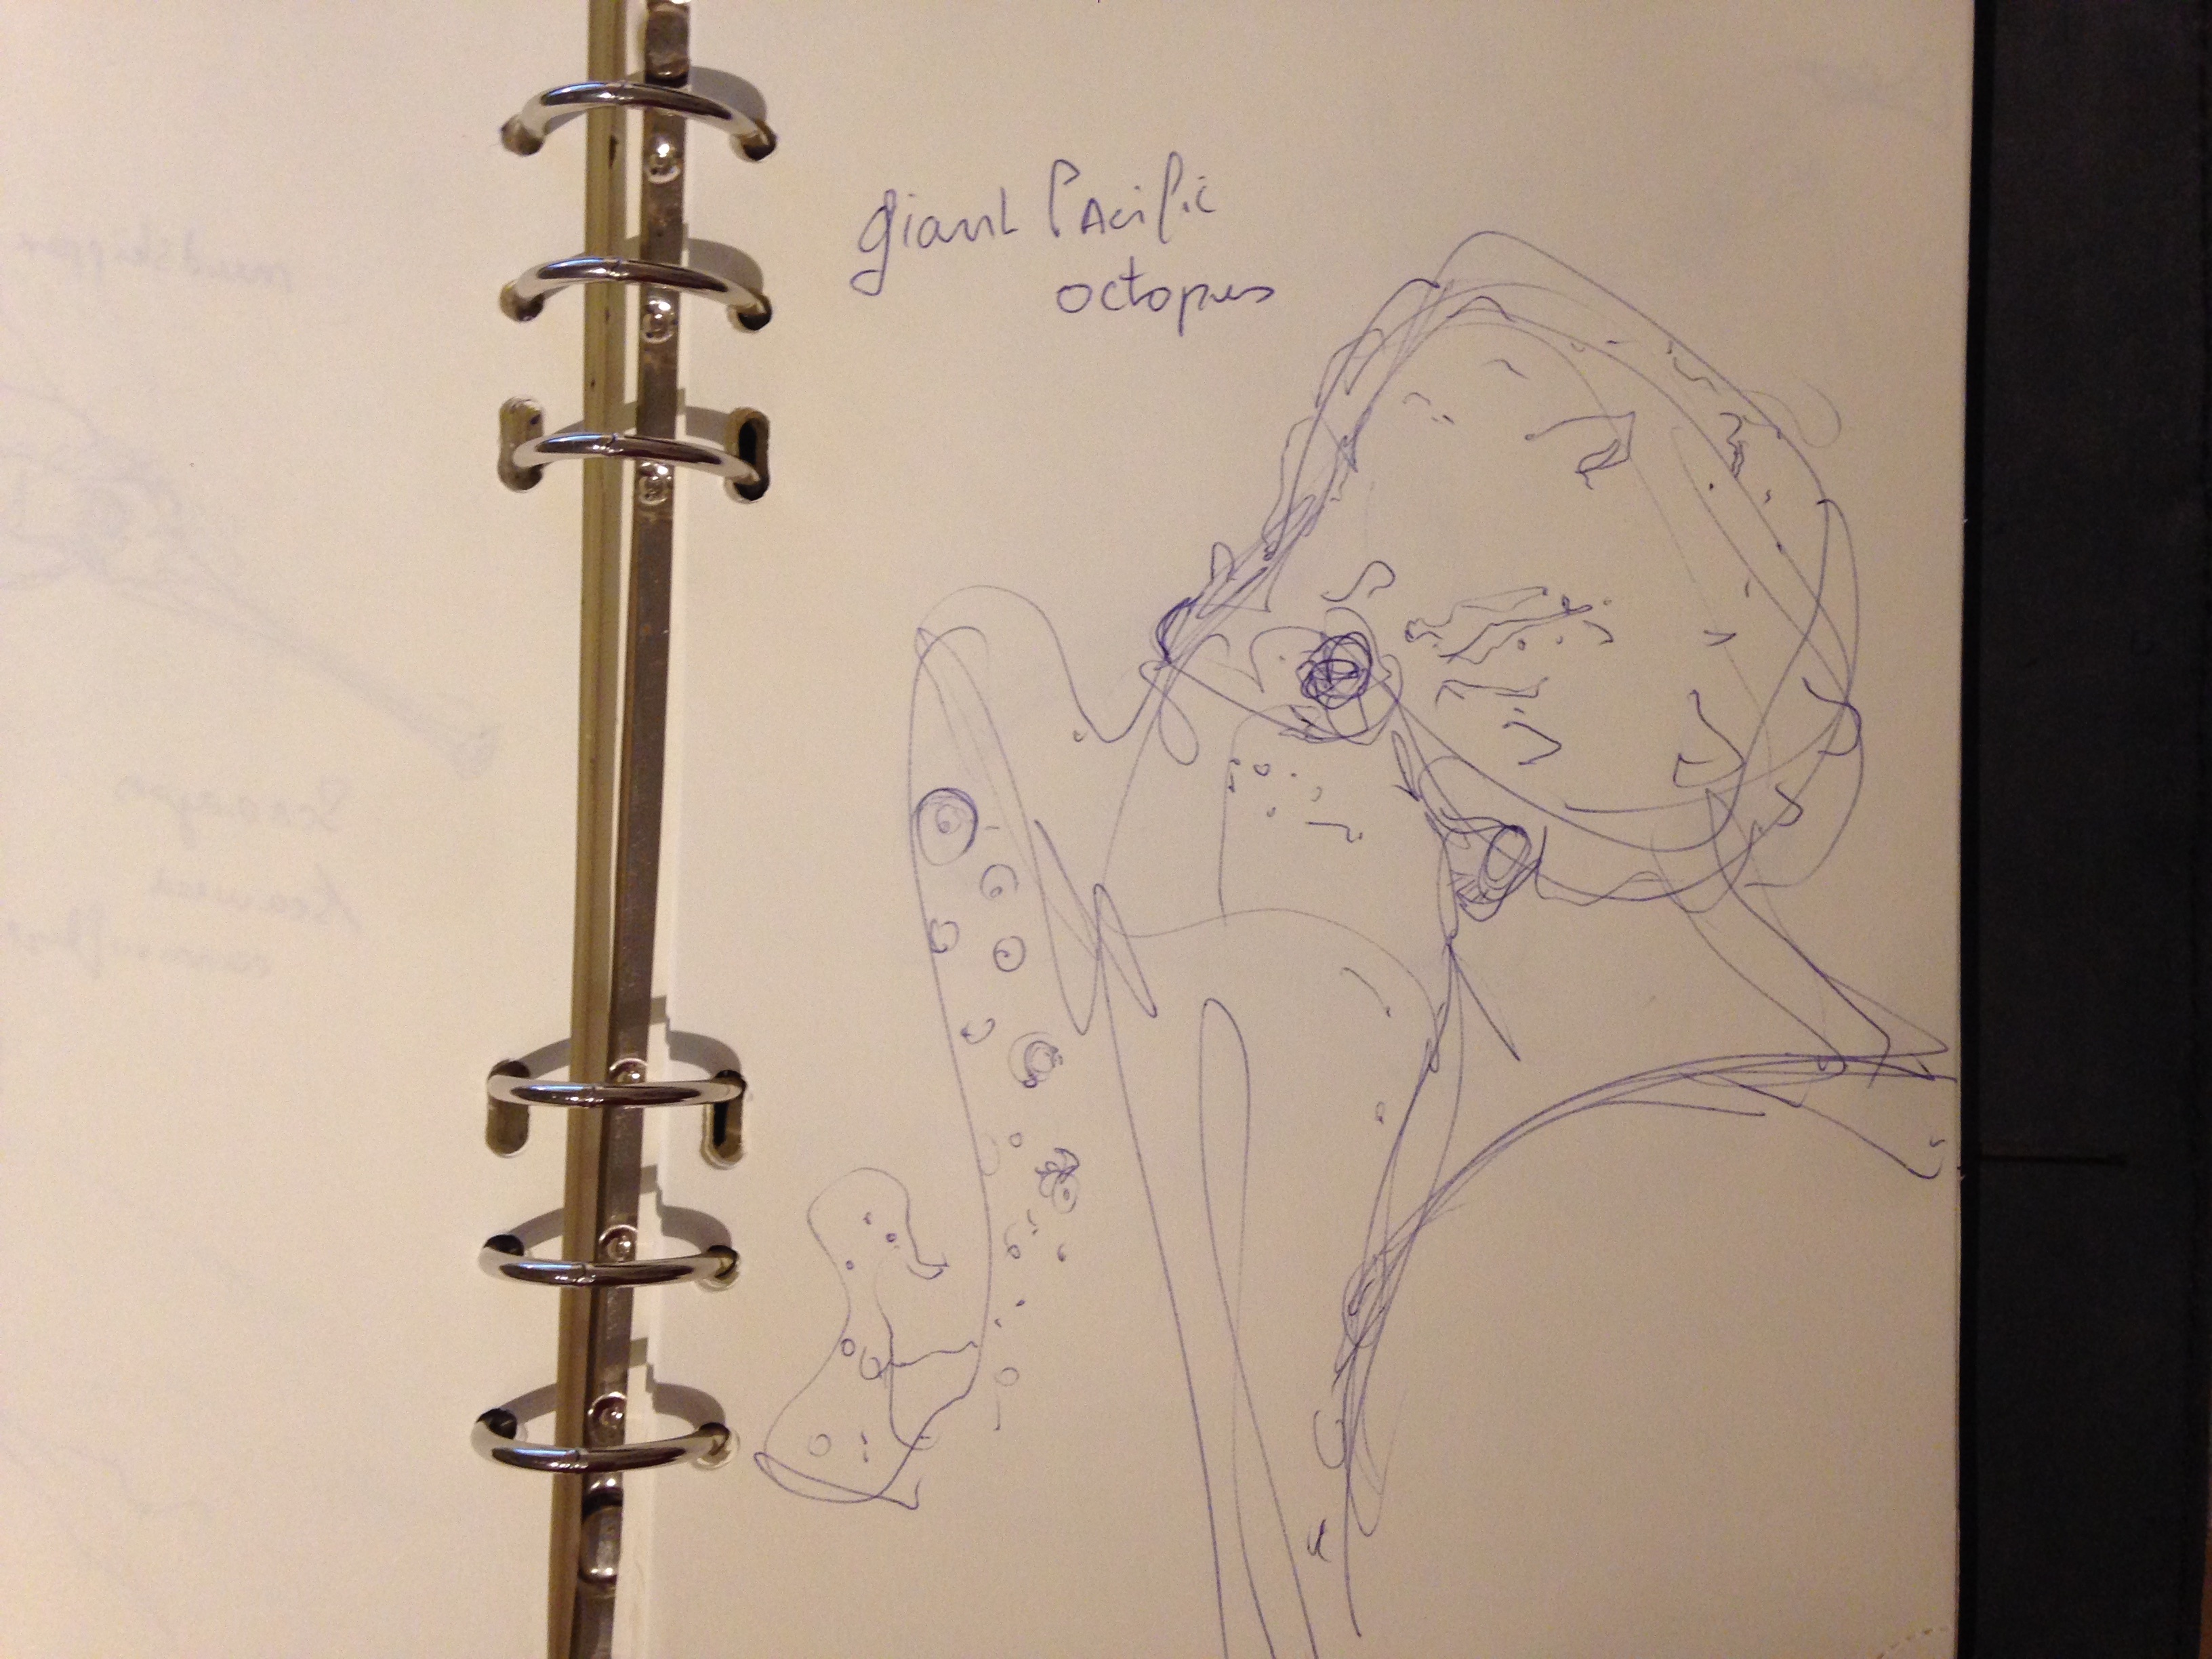 the design sketchbook sketch boston acquarium fish drawing ball point pen blue bic giant octopus